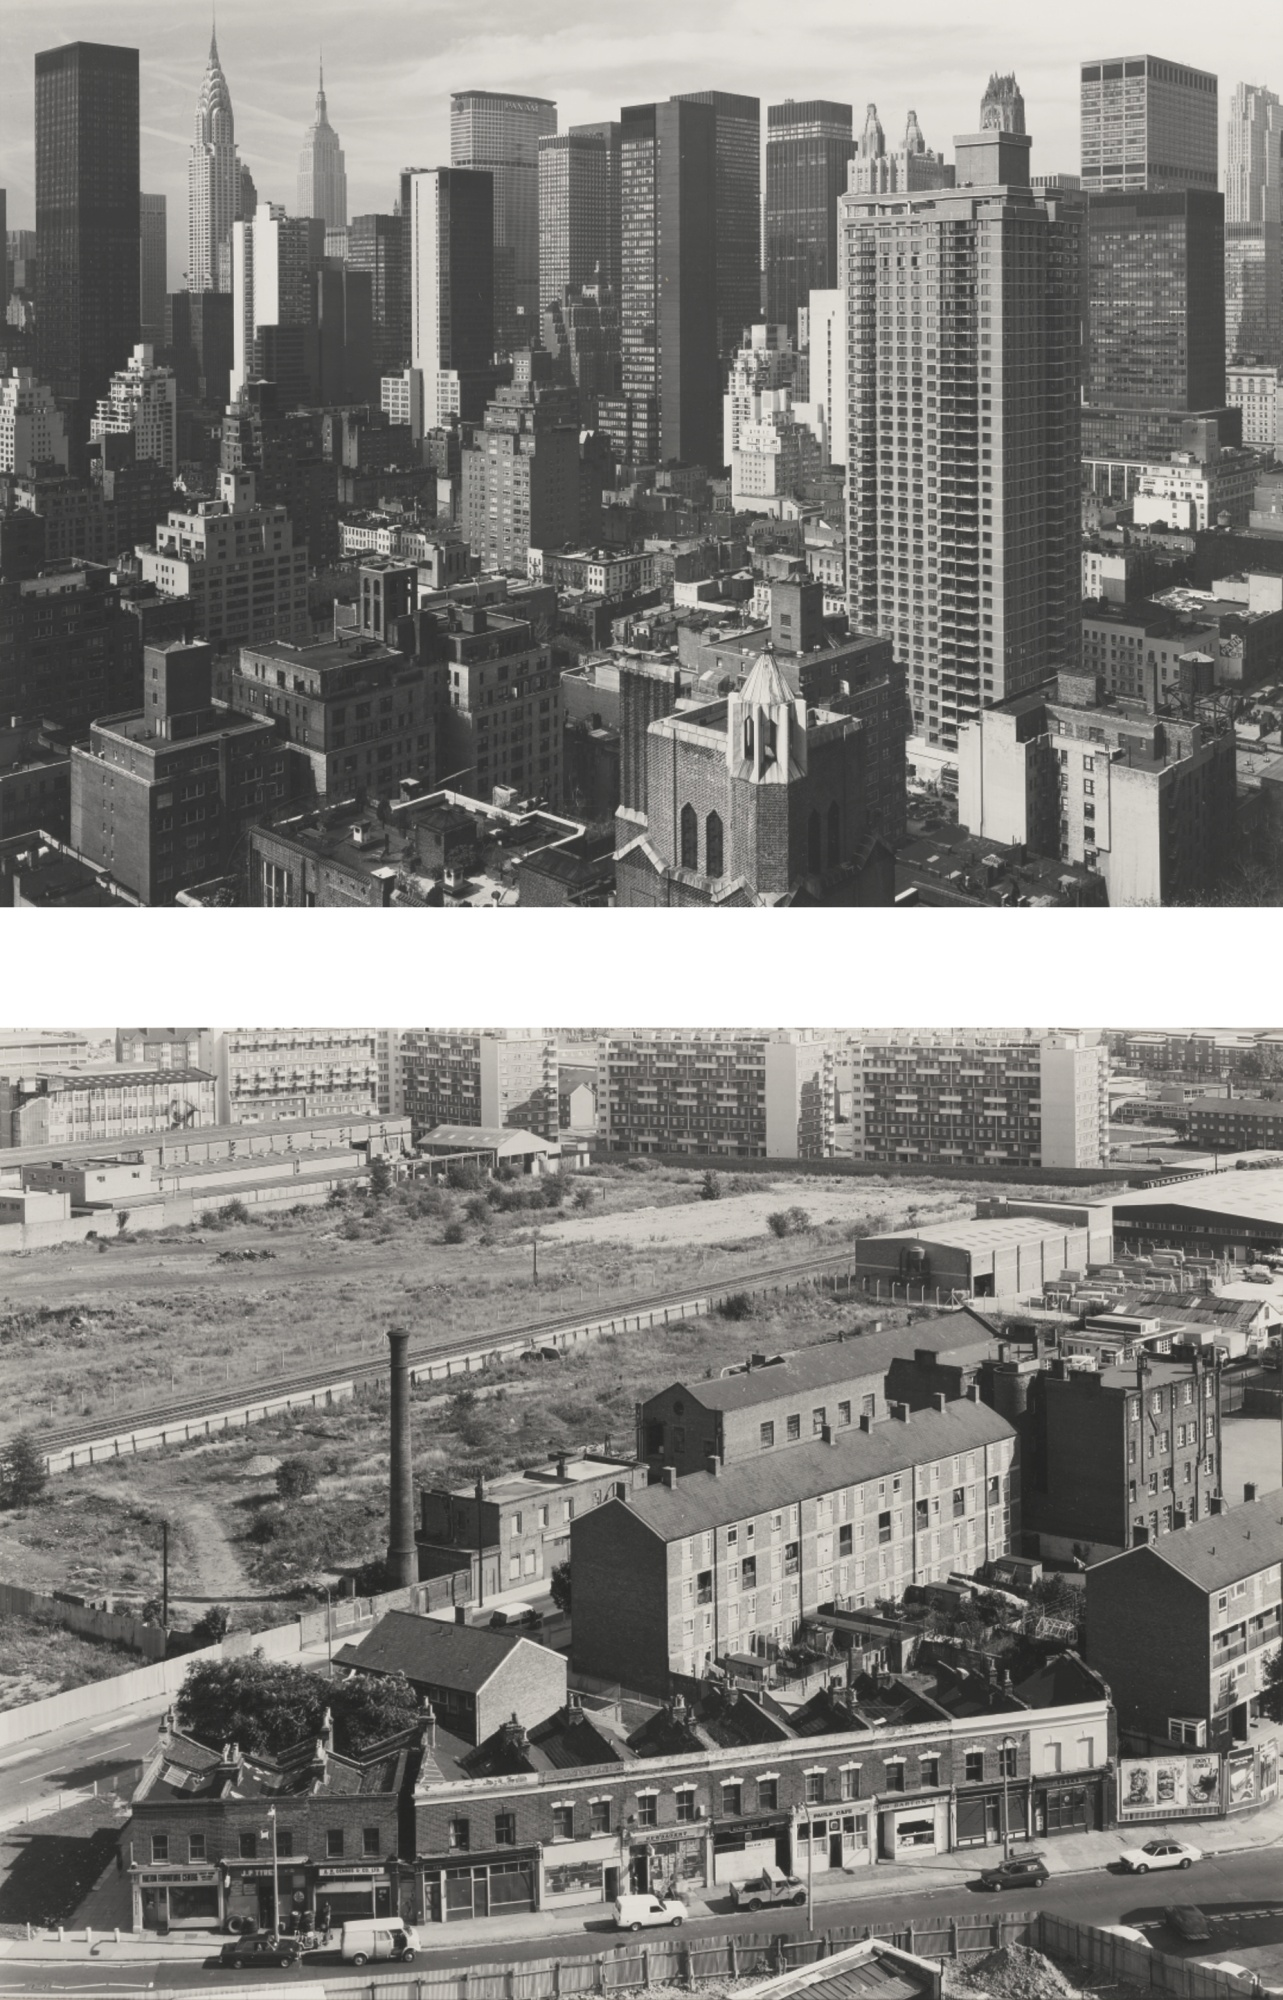 Thomas Struth-Selected Cityscapes (New York AndLondon)-1978